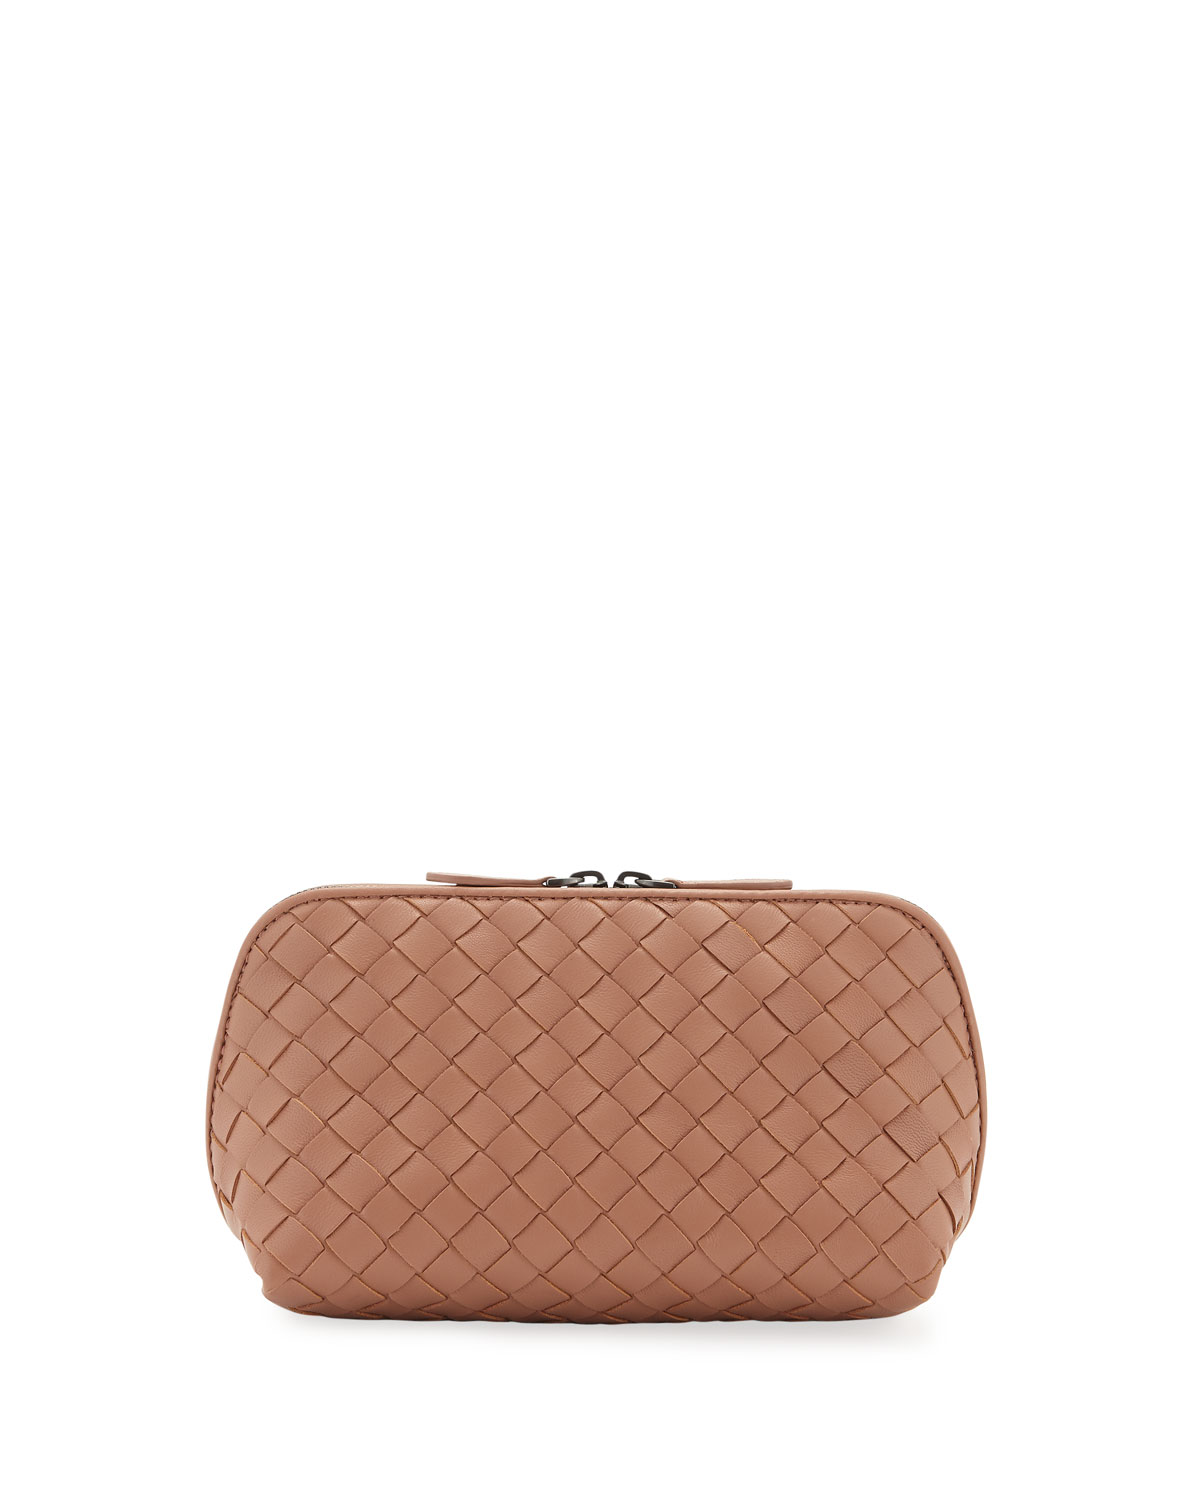 Medium Woven Leather Cosmetics Case